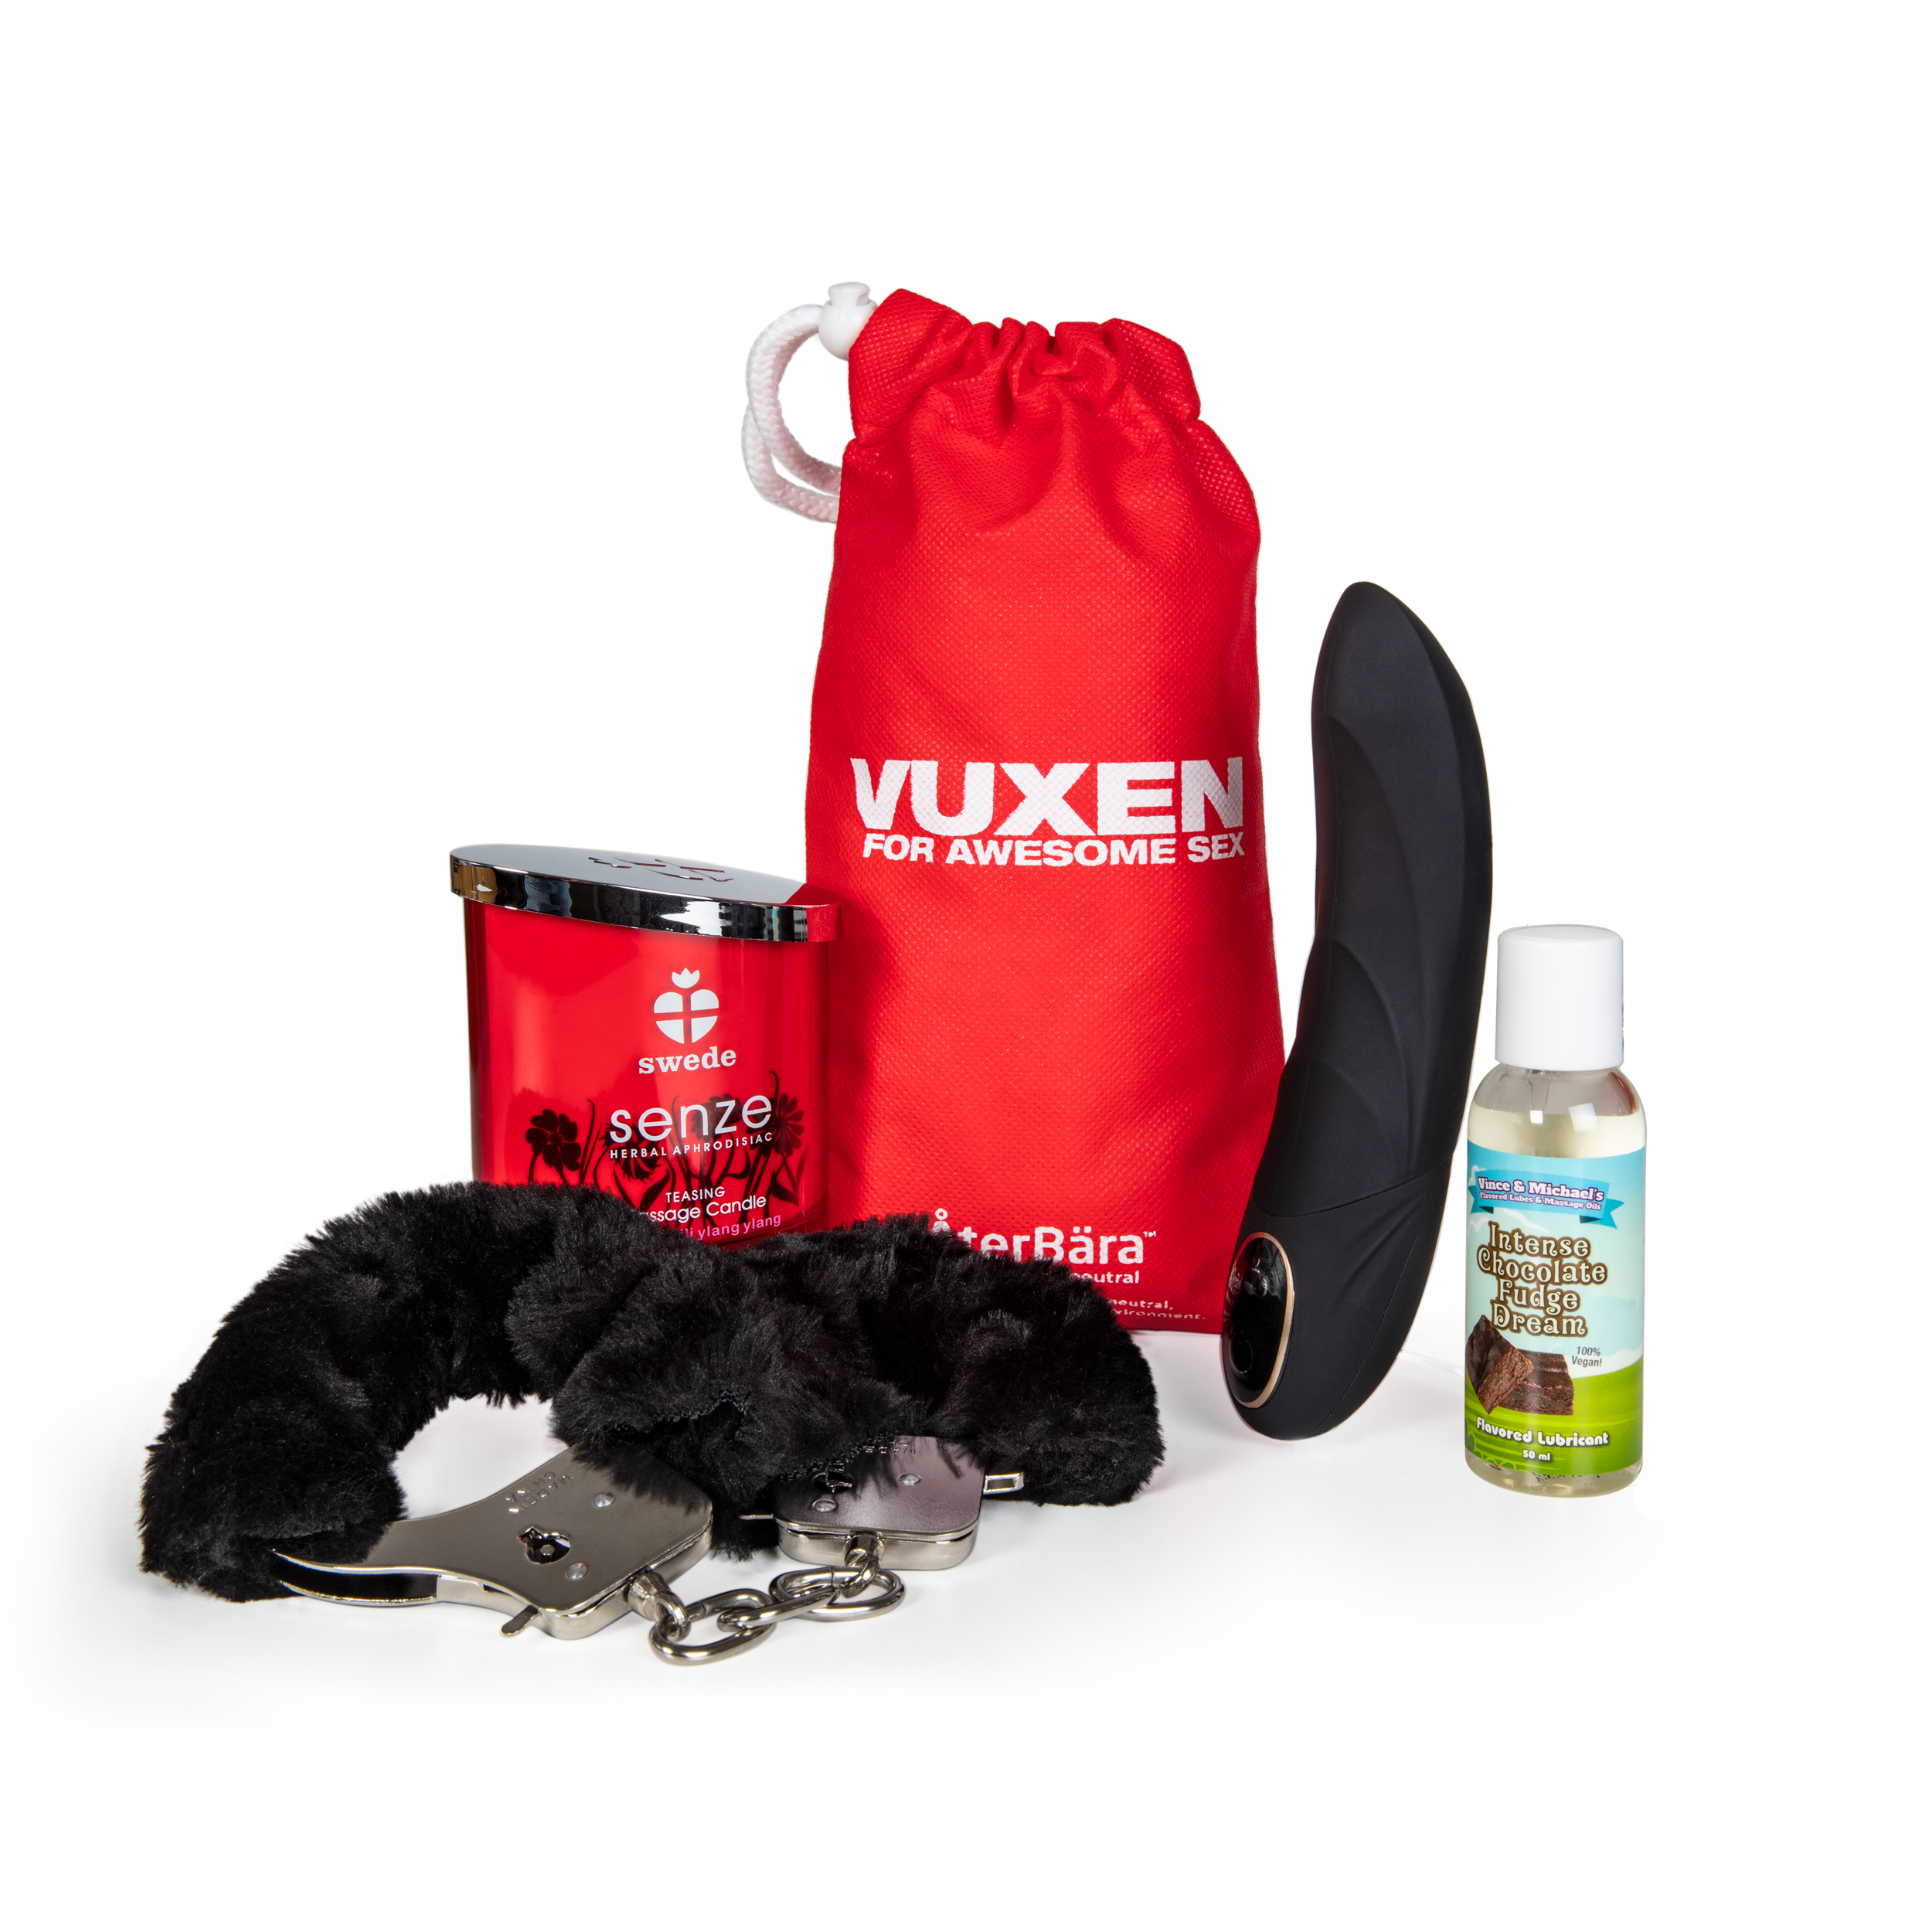 Vuxen Set - A Night With Luxury Passion